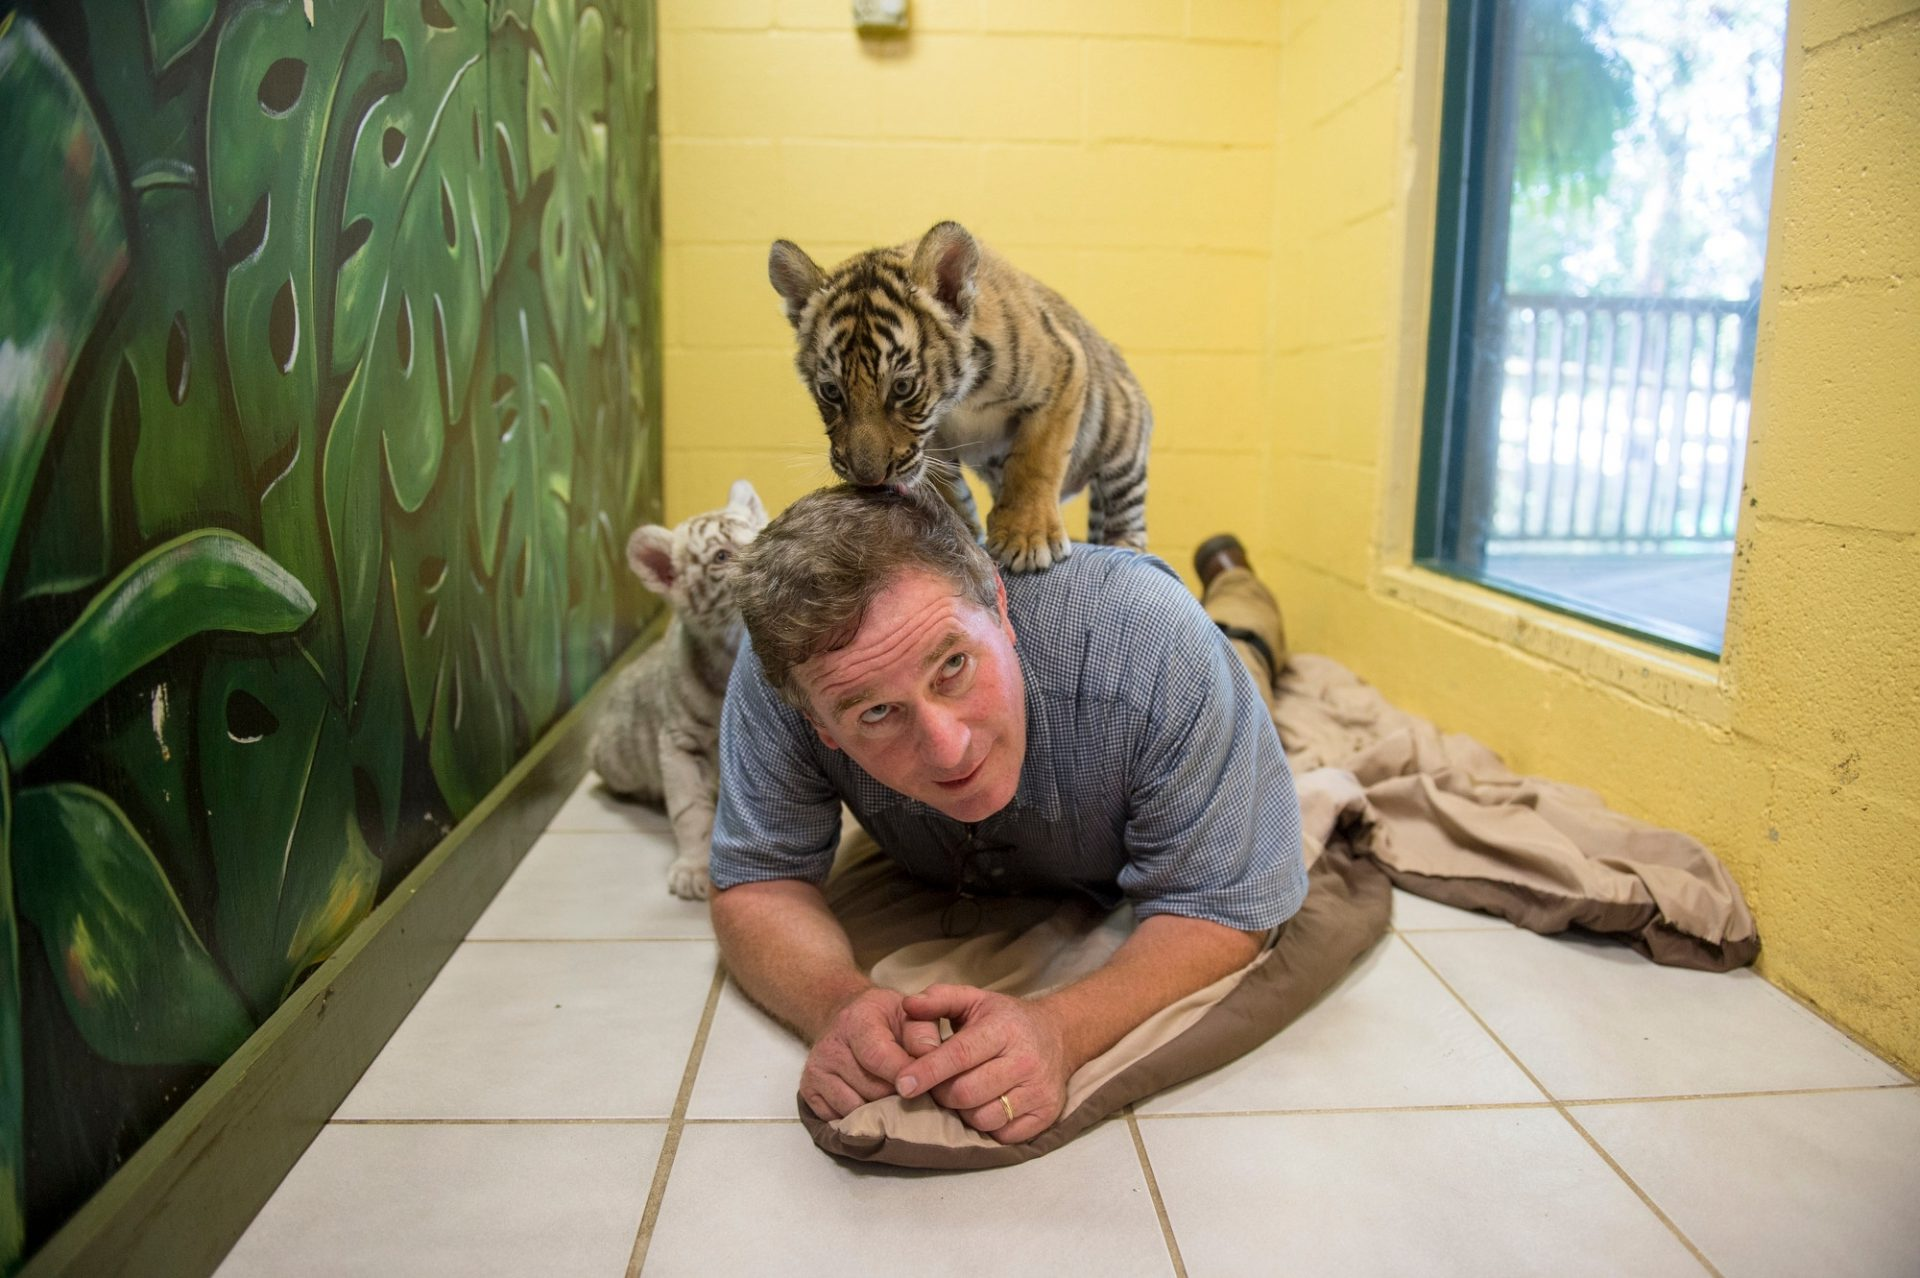 Picture of Joel Sartore with endangered, eight-week-old Bengal tiger cubs (Panthera tigris tigris) at the Alabama Gulf Coast Zoo.